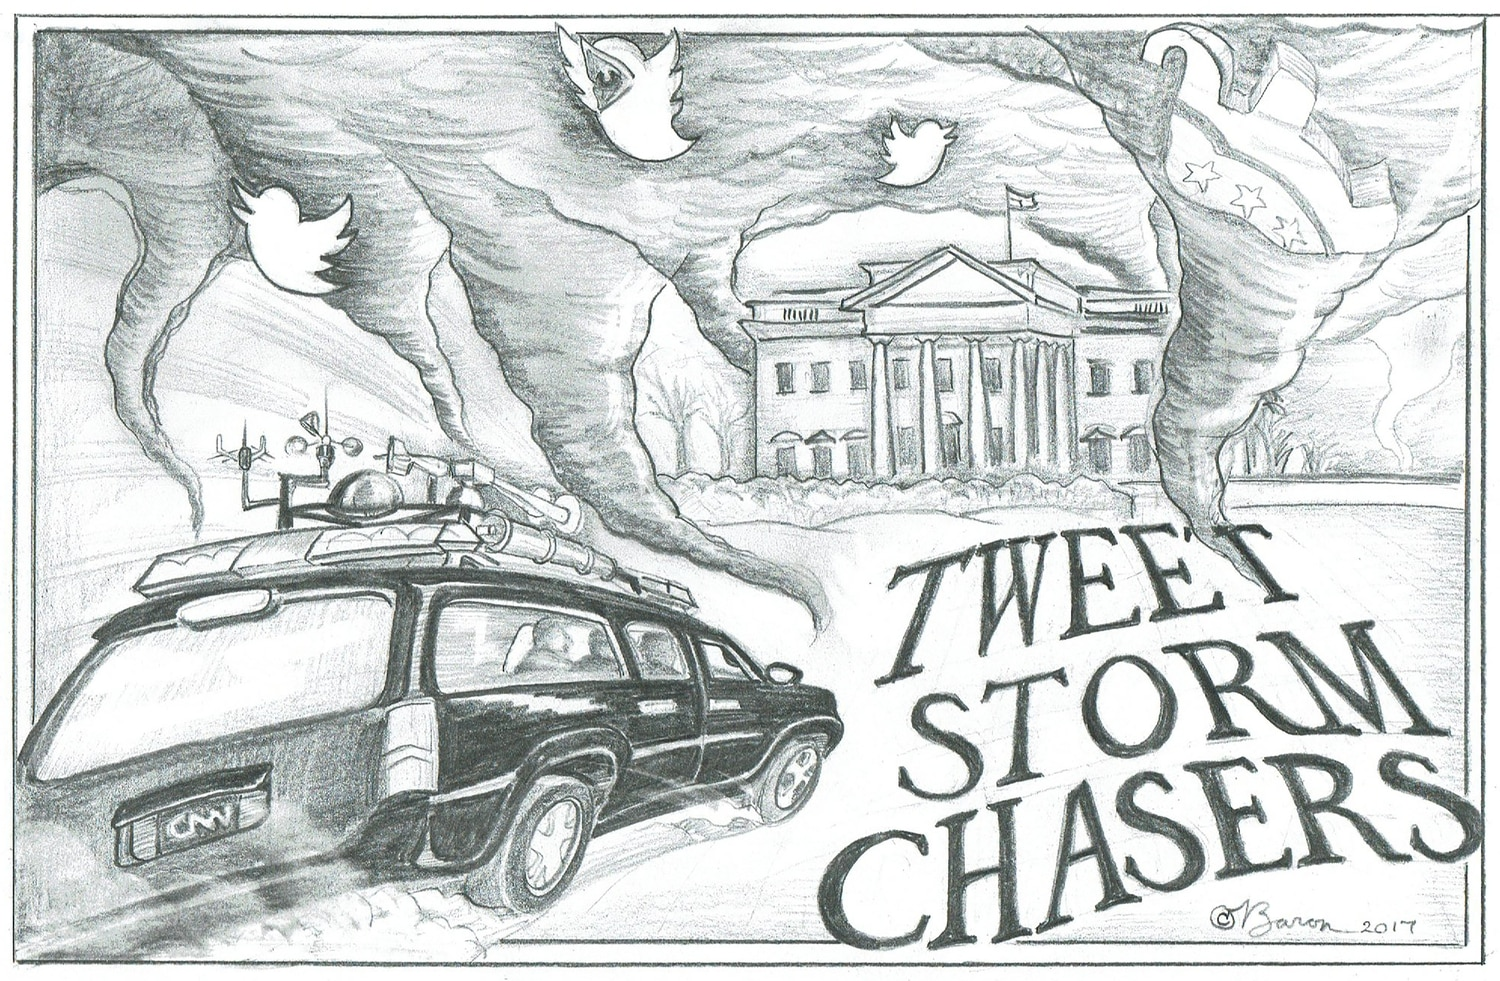 Tweet Storm Chasers